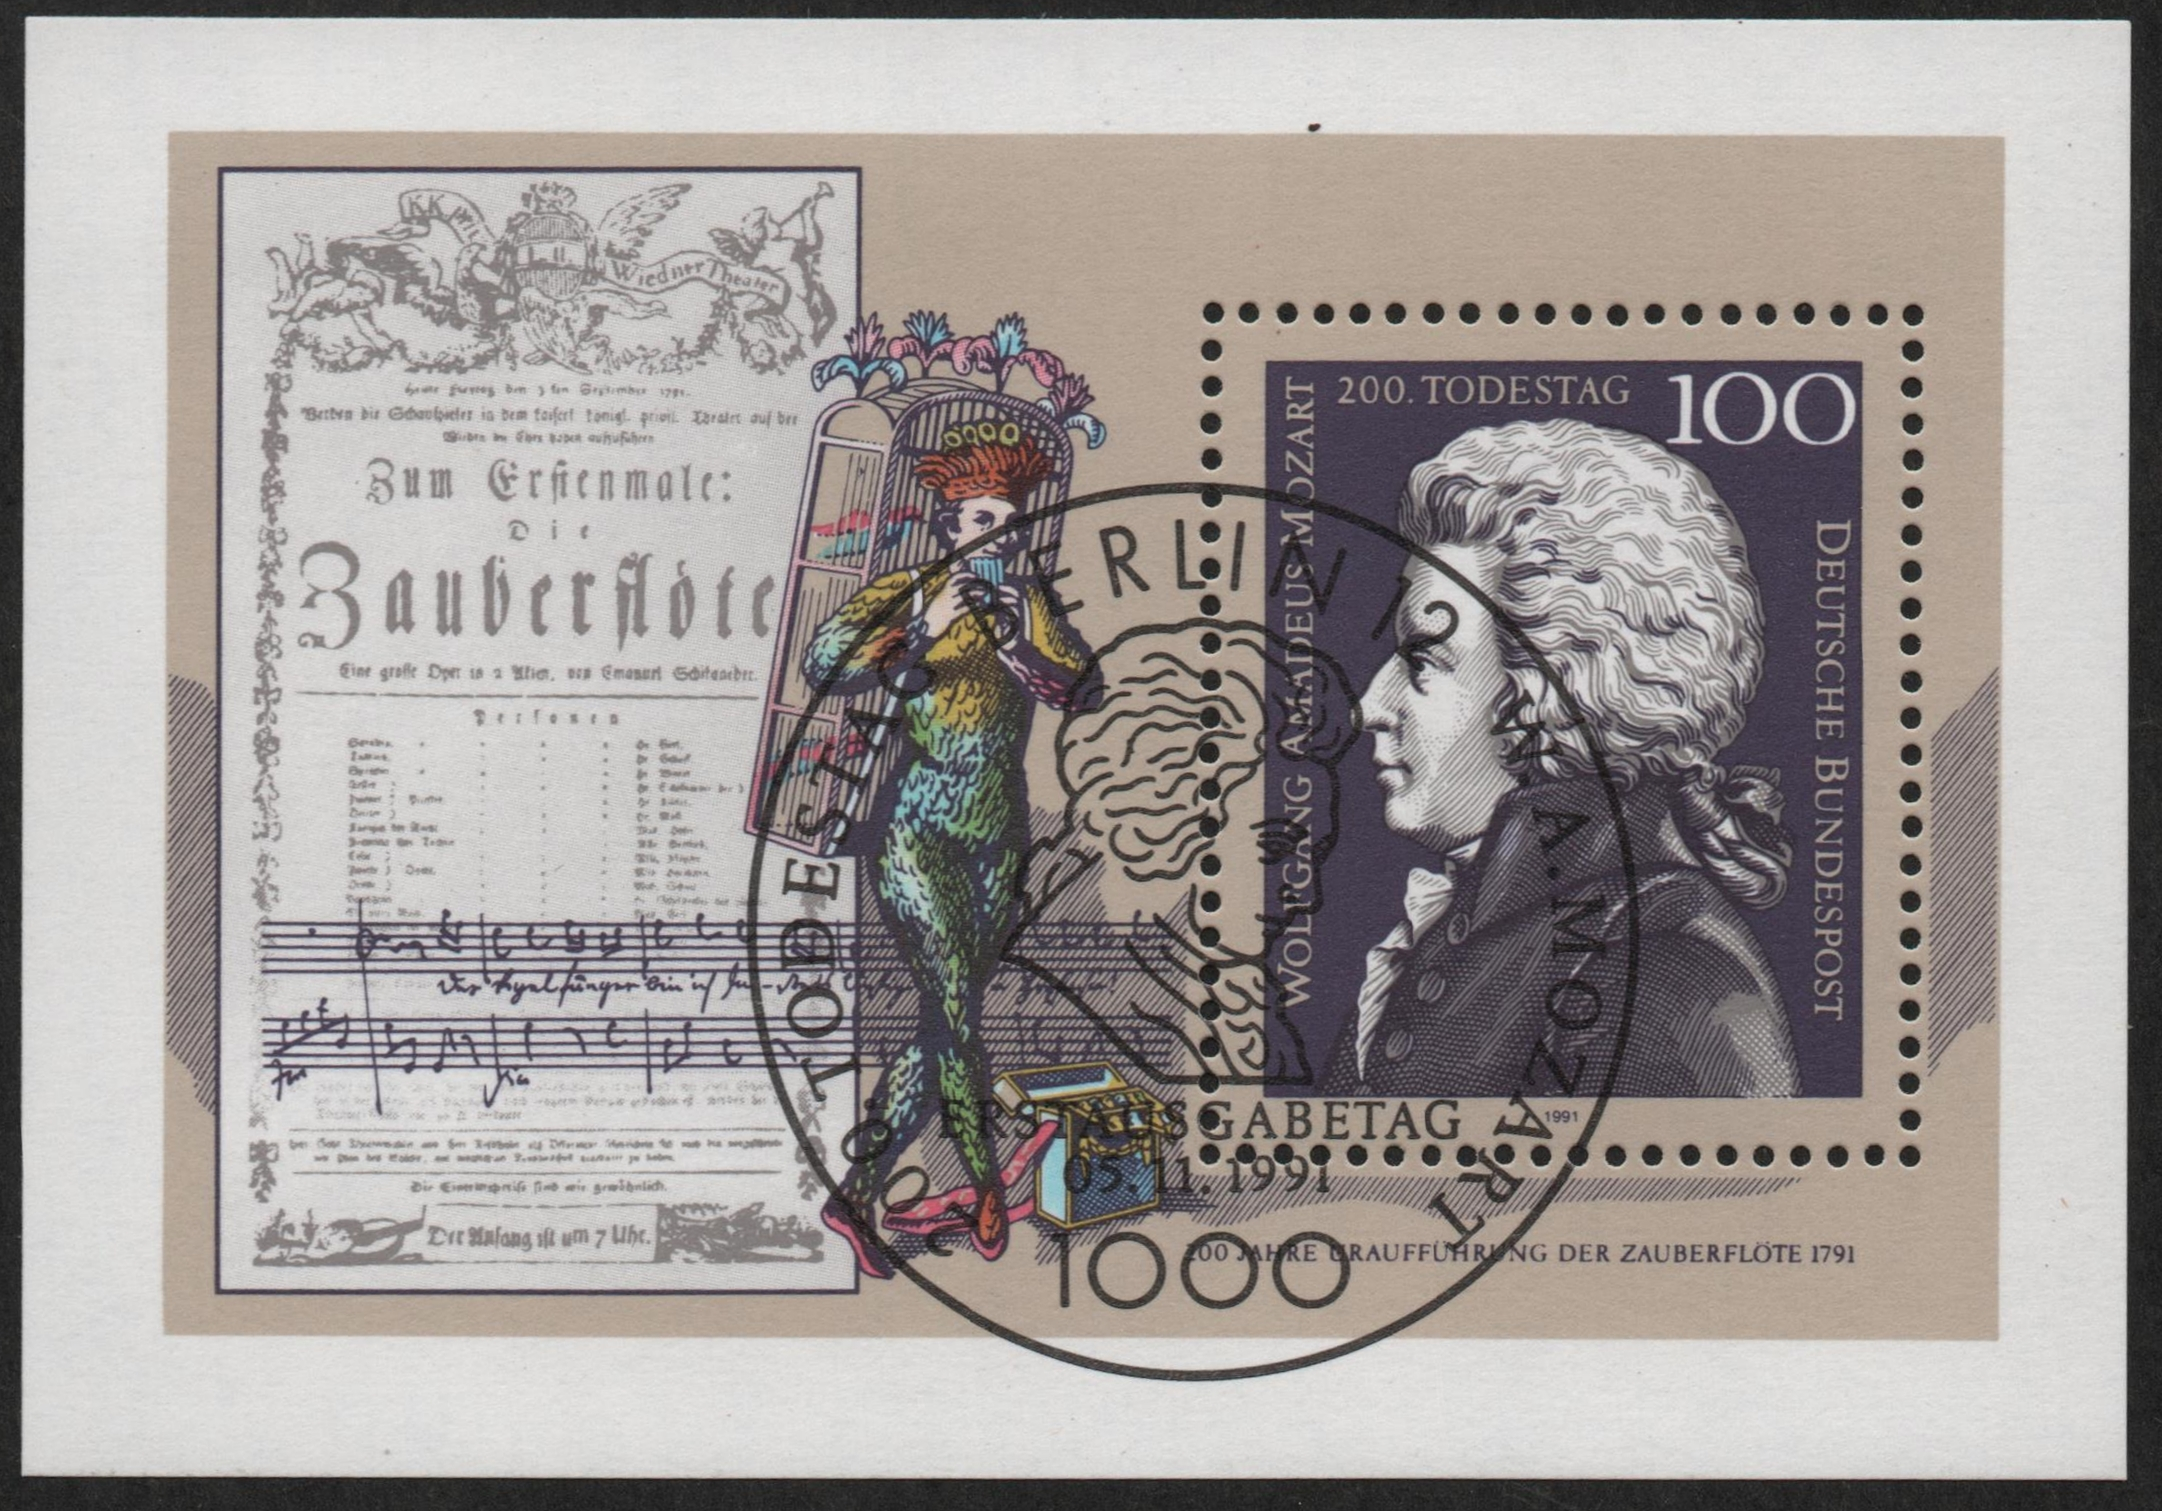 Germany - Scott #1691 ((1991) souvenir sheet